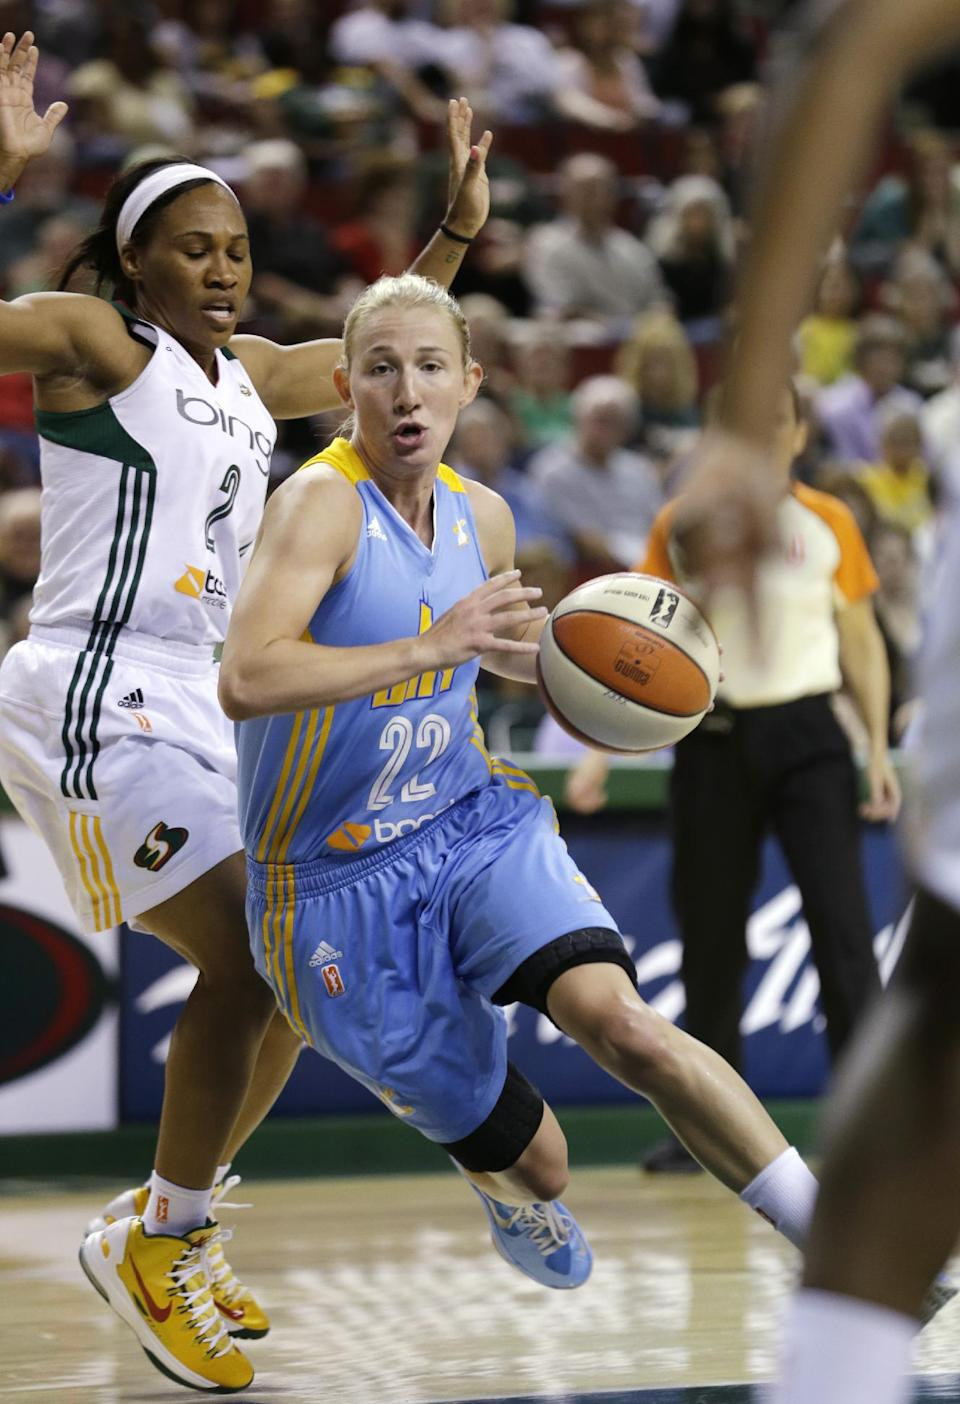 Prince rallies Sky from 16 down in win over Storm